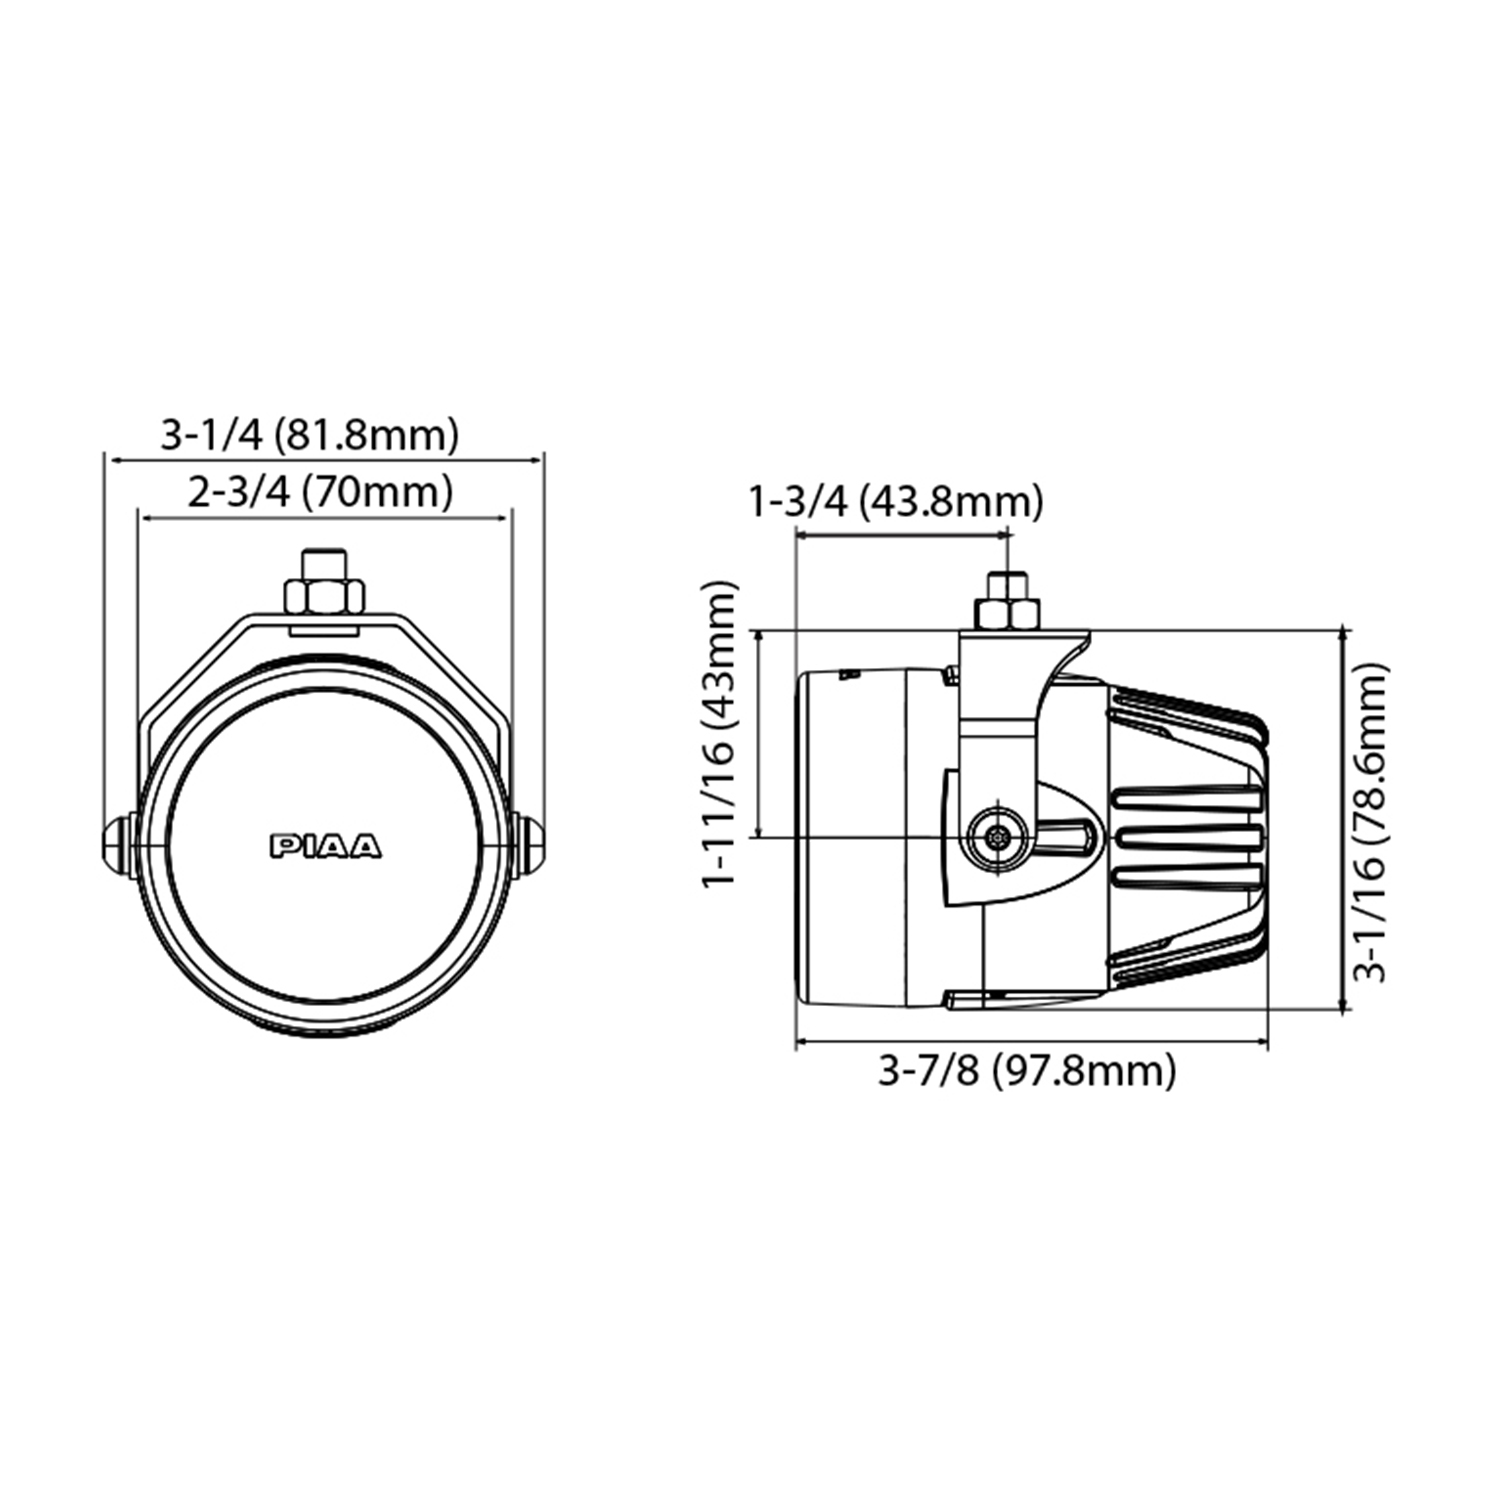 Piaa Fog Light Relay Wiring Diagram Trusted Diagrams Sr5 Tacoma Schematic 510 U2022 Circuit For Flood Lights